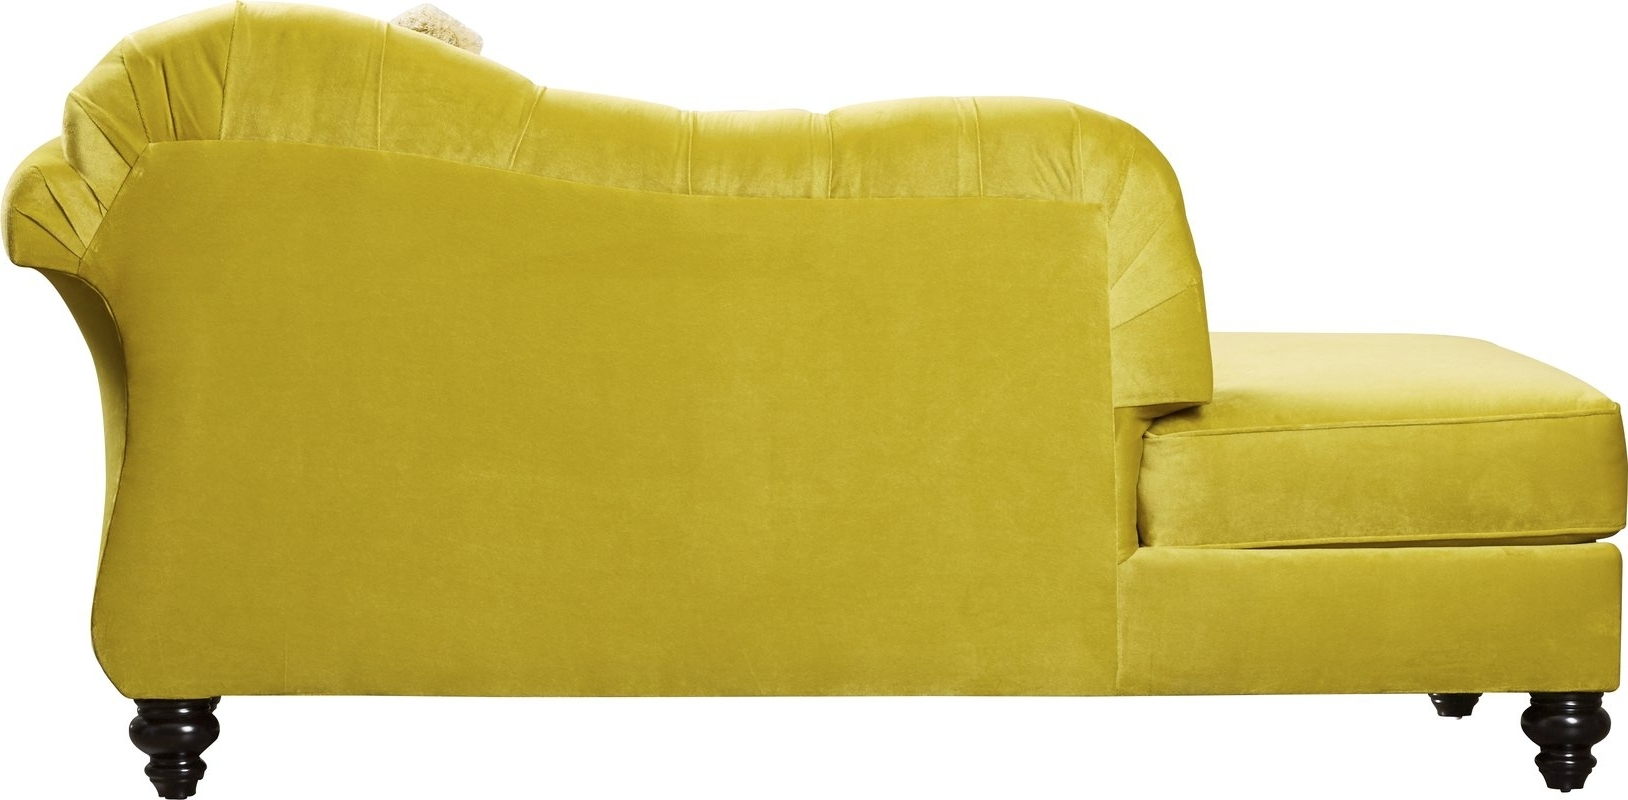 Wayfair Regarding Trendy Yellow Chaise Lounges (View 12 of 15)